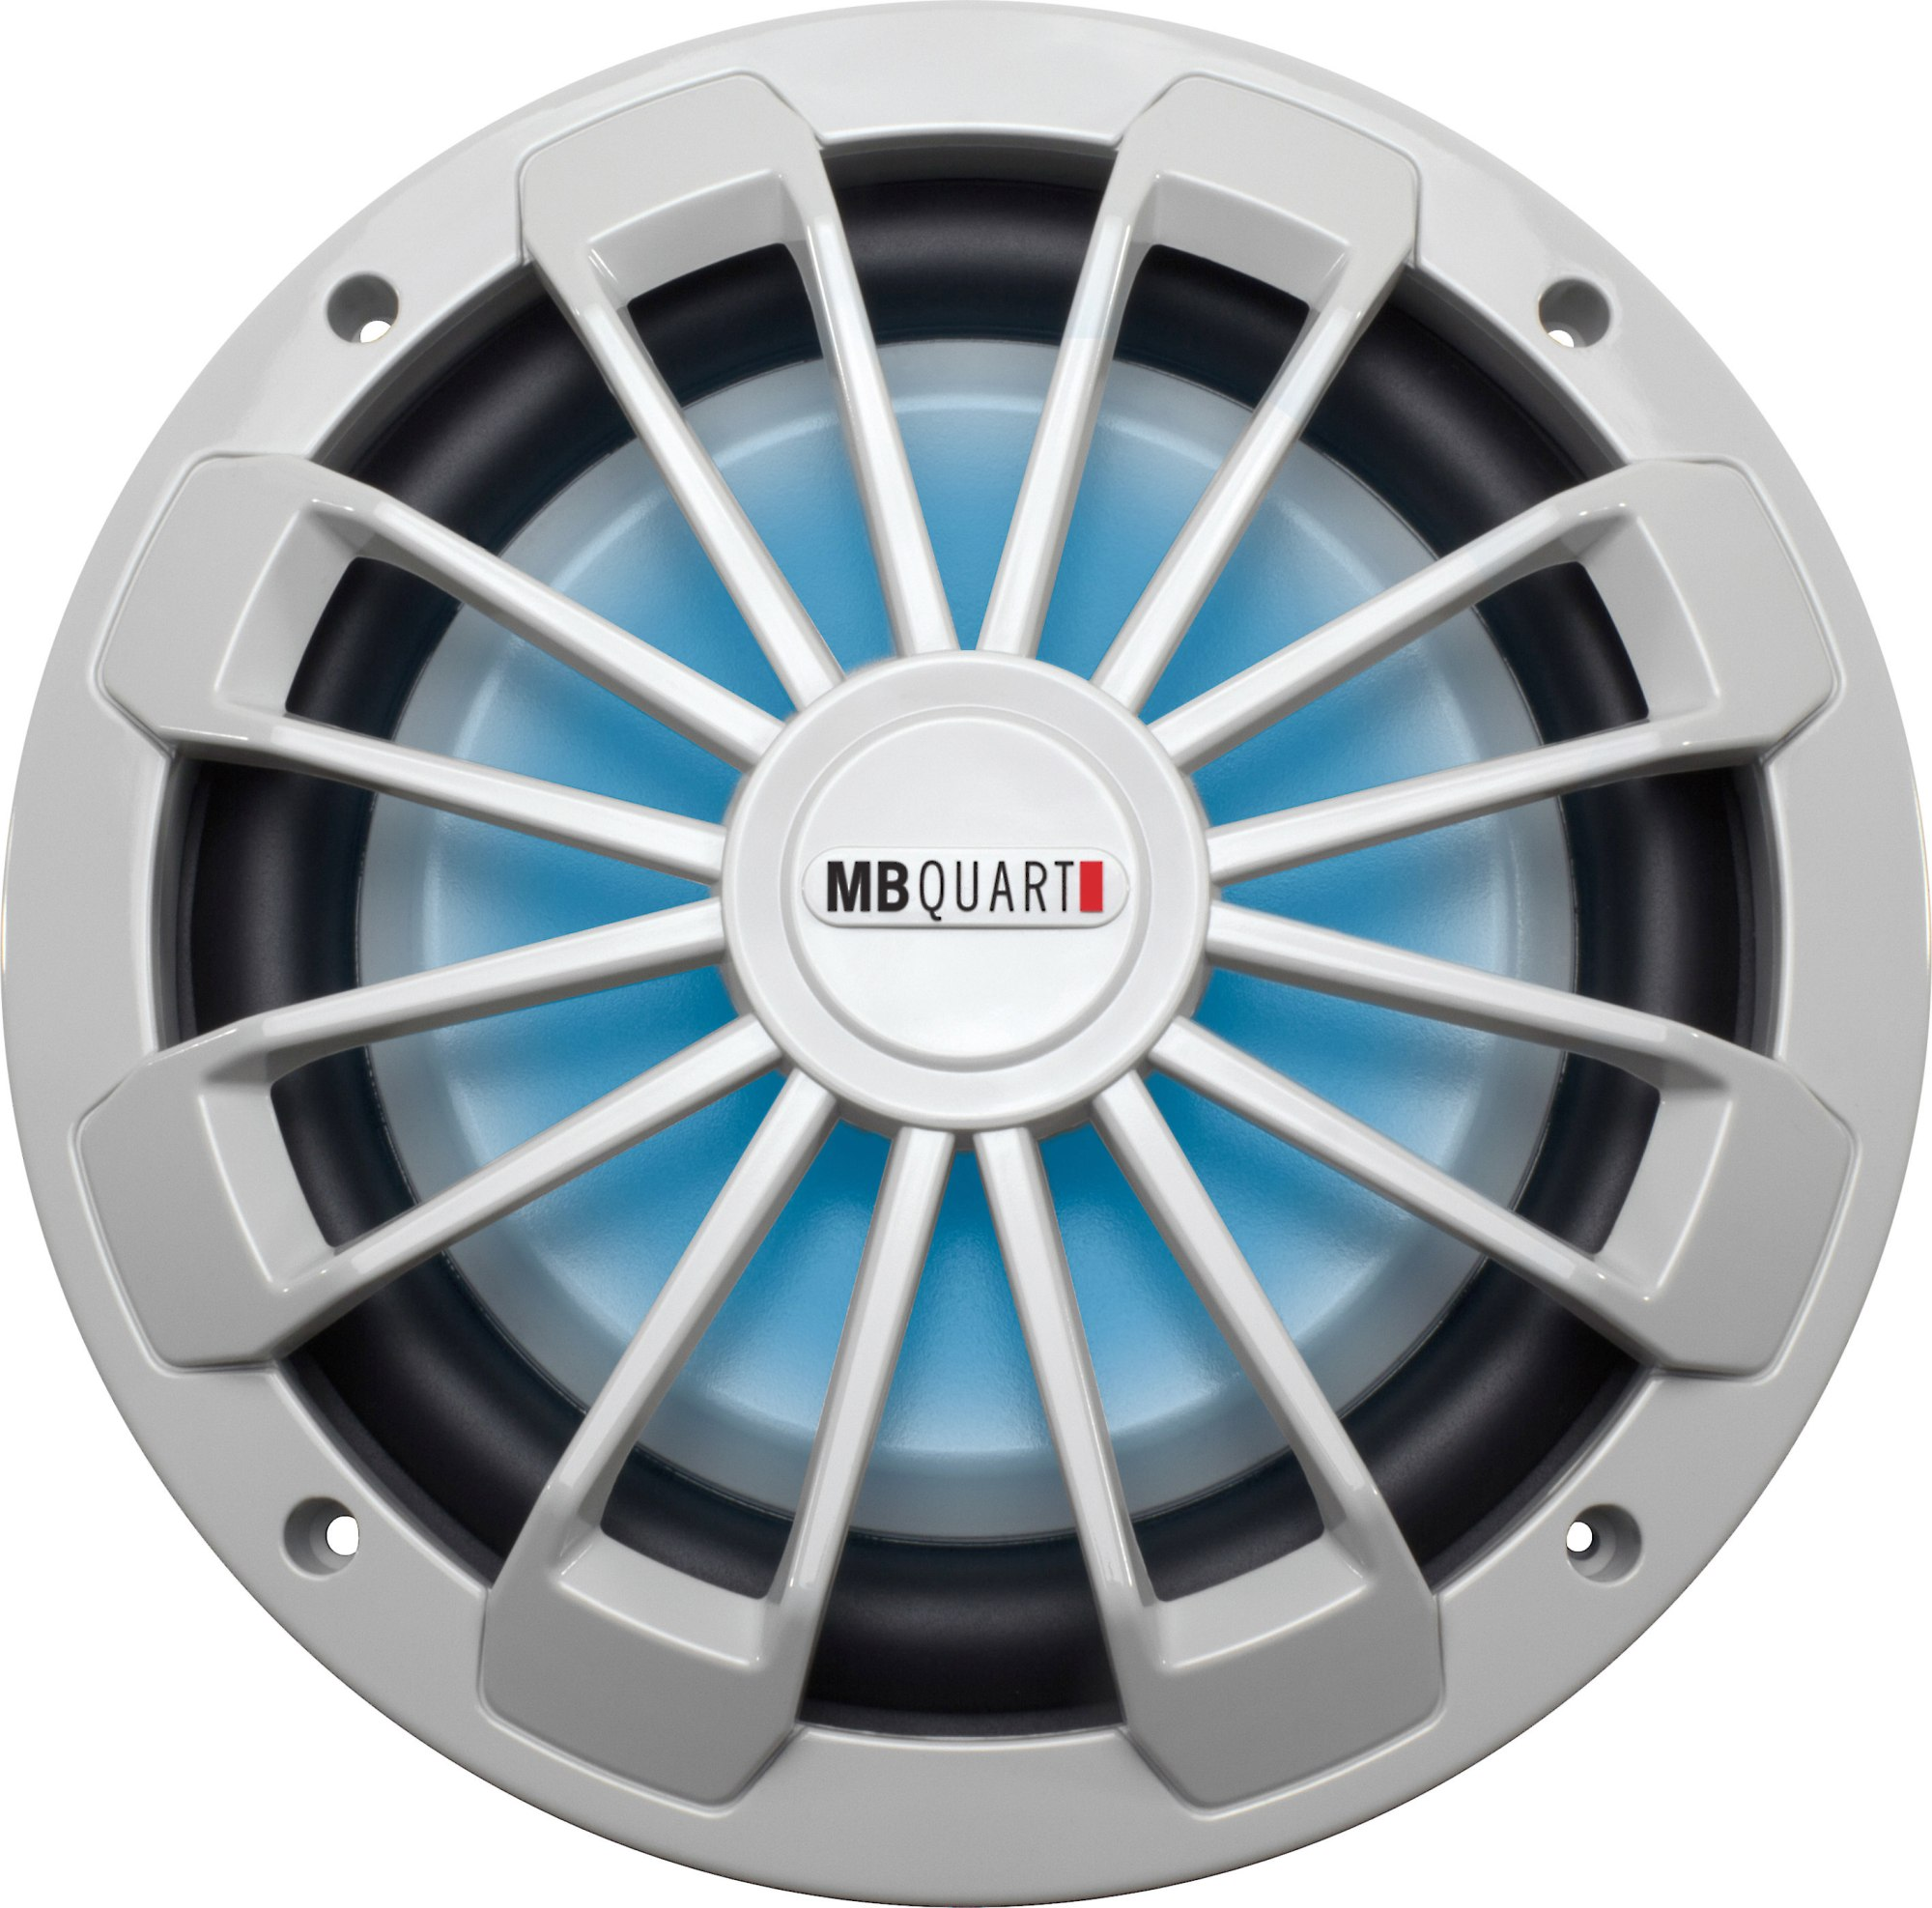 hight resolution of mb quart nw1 254l nautic series 10 4 ohm shallow mount marine subwoofer with led lighting at crutchfield com